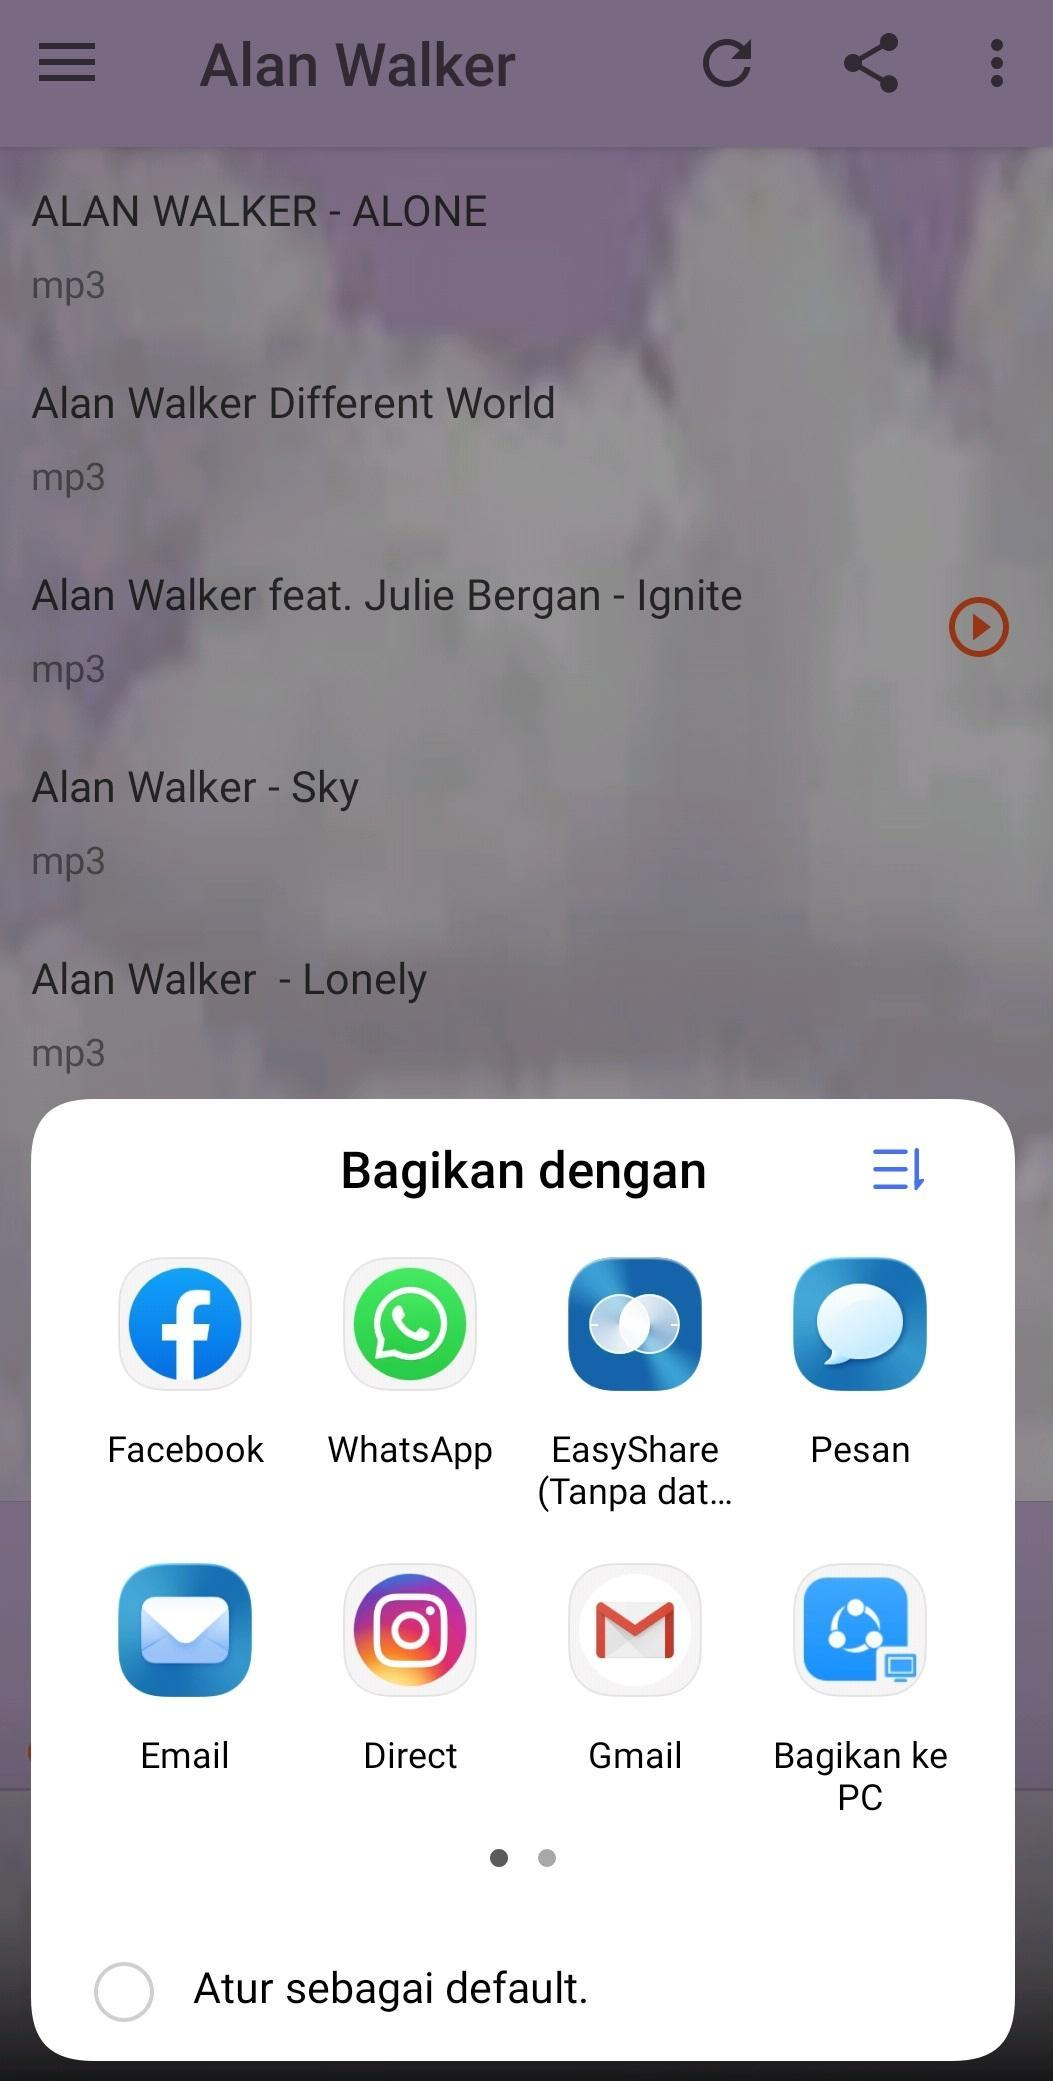 Alan Walker Full Song for Android - APK Download